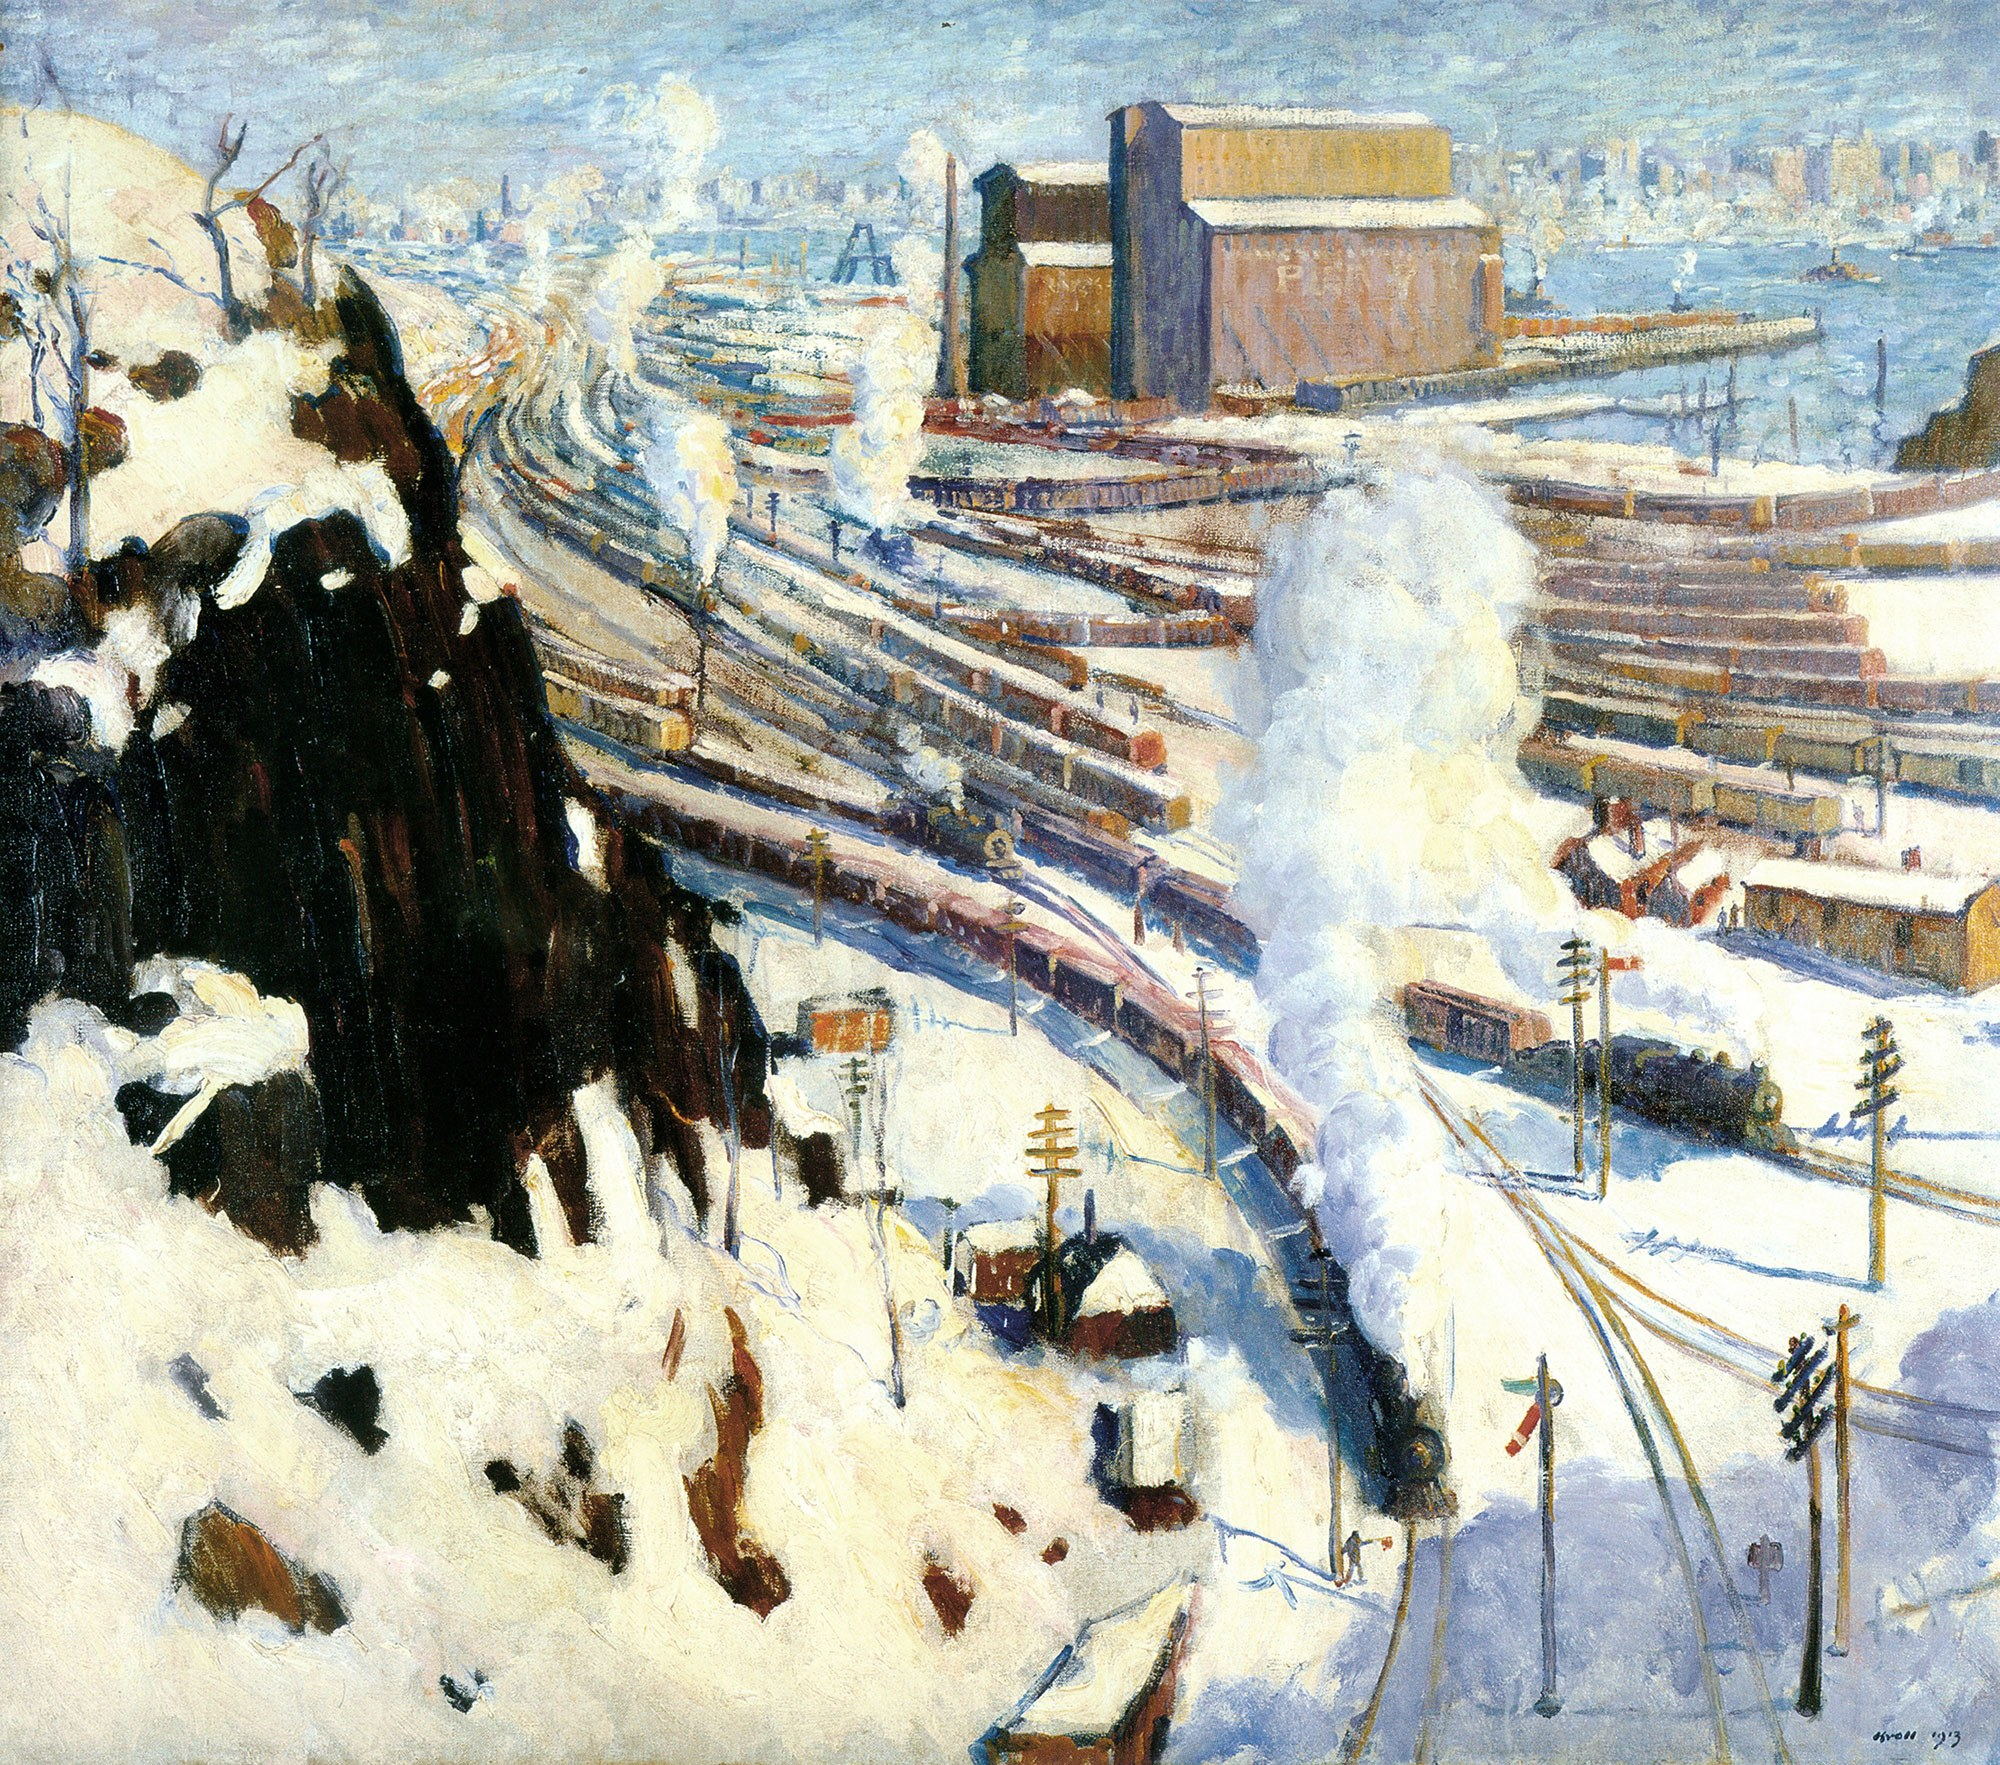 Leon Kroll, American, 1884–1974. Terminal Yards, 1913. Oil on canvas, 46 × 52 1/8 in. Gift of Mrs. Arthur Jerome Eddy, 1931.4